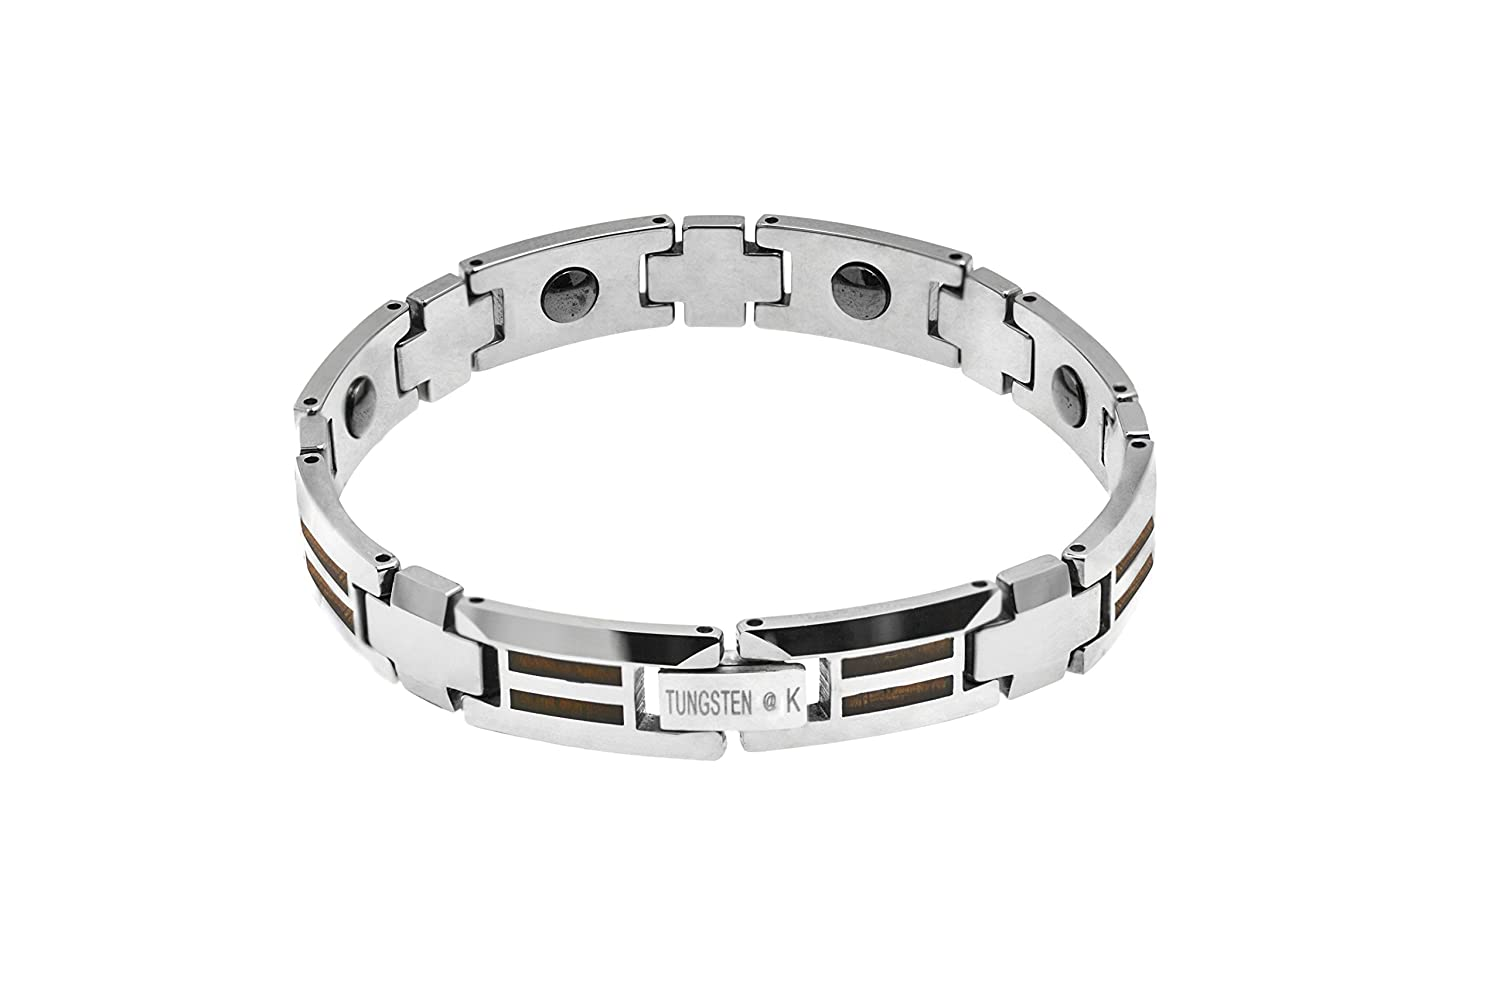 stainless steel bracelet bracelets more rings gents s product than gent tungsten just